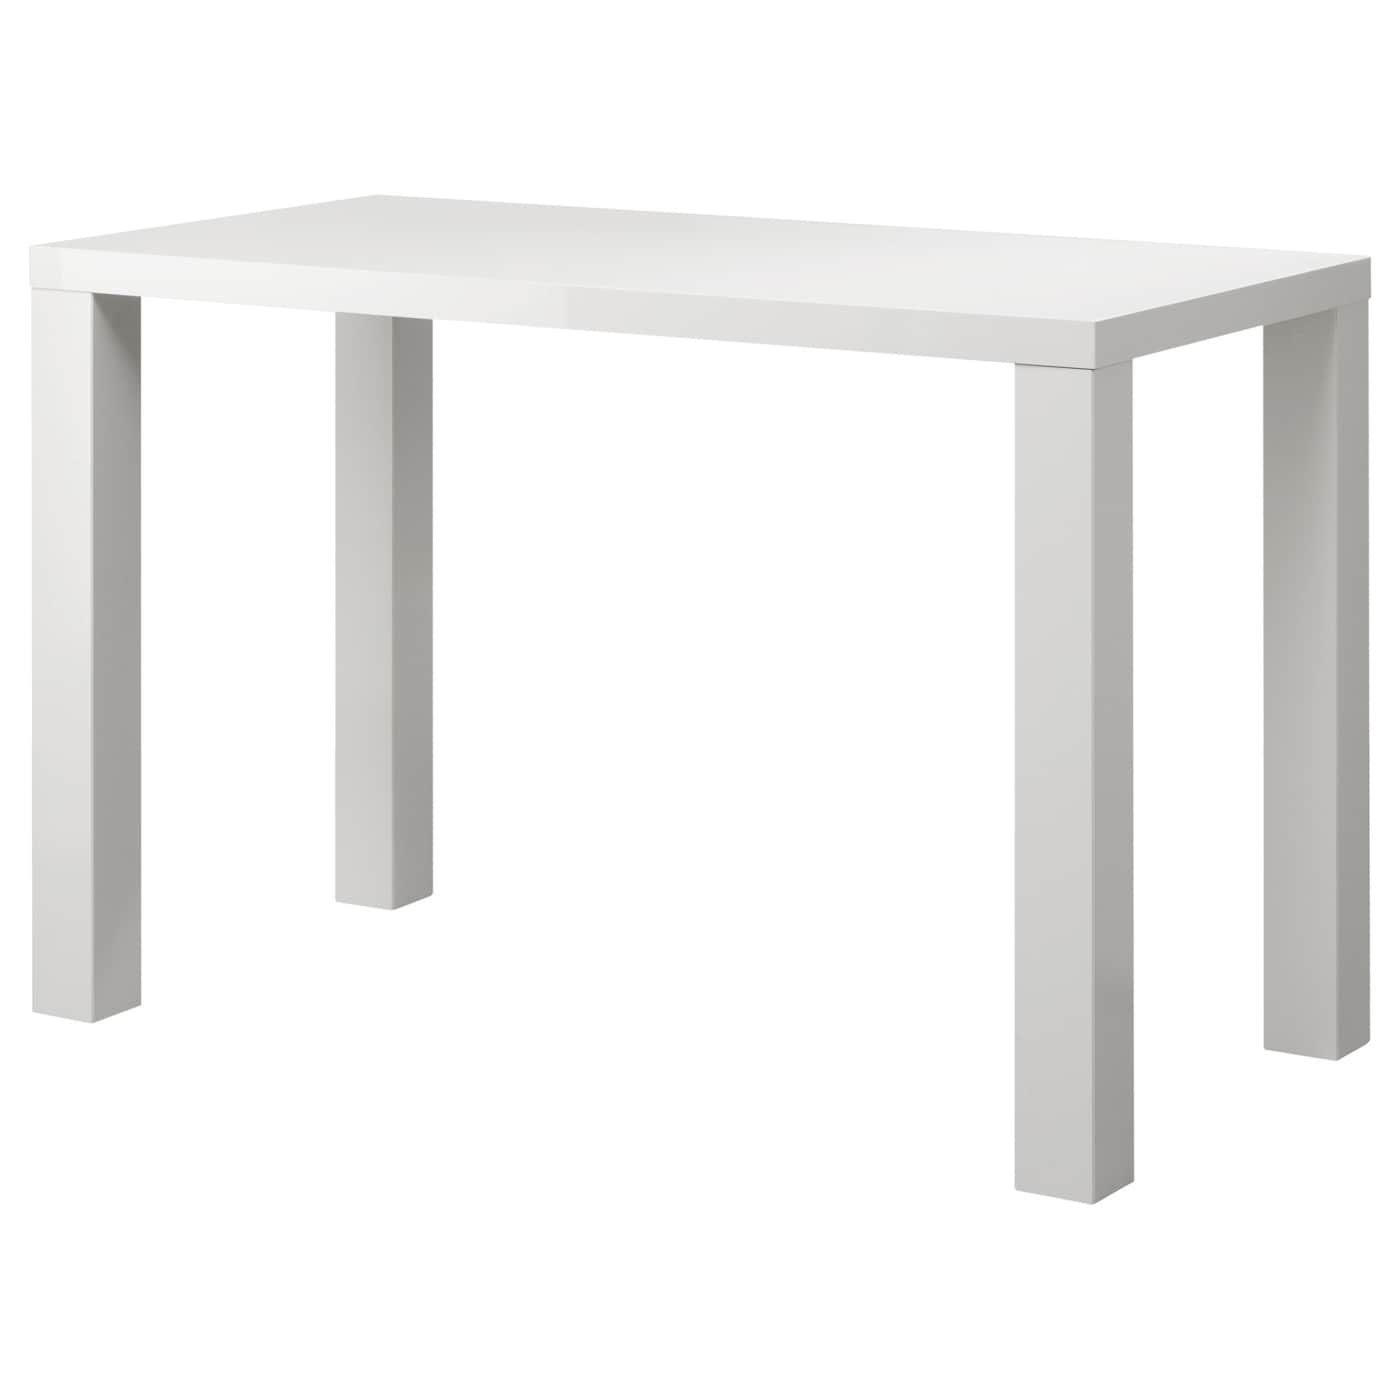 Ikea Toresund Bar Table and Stools in